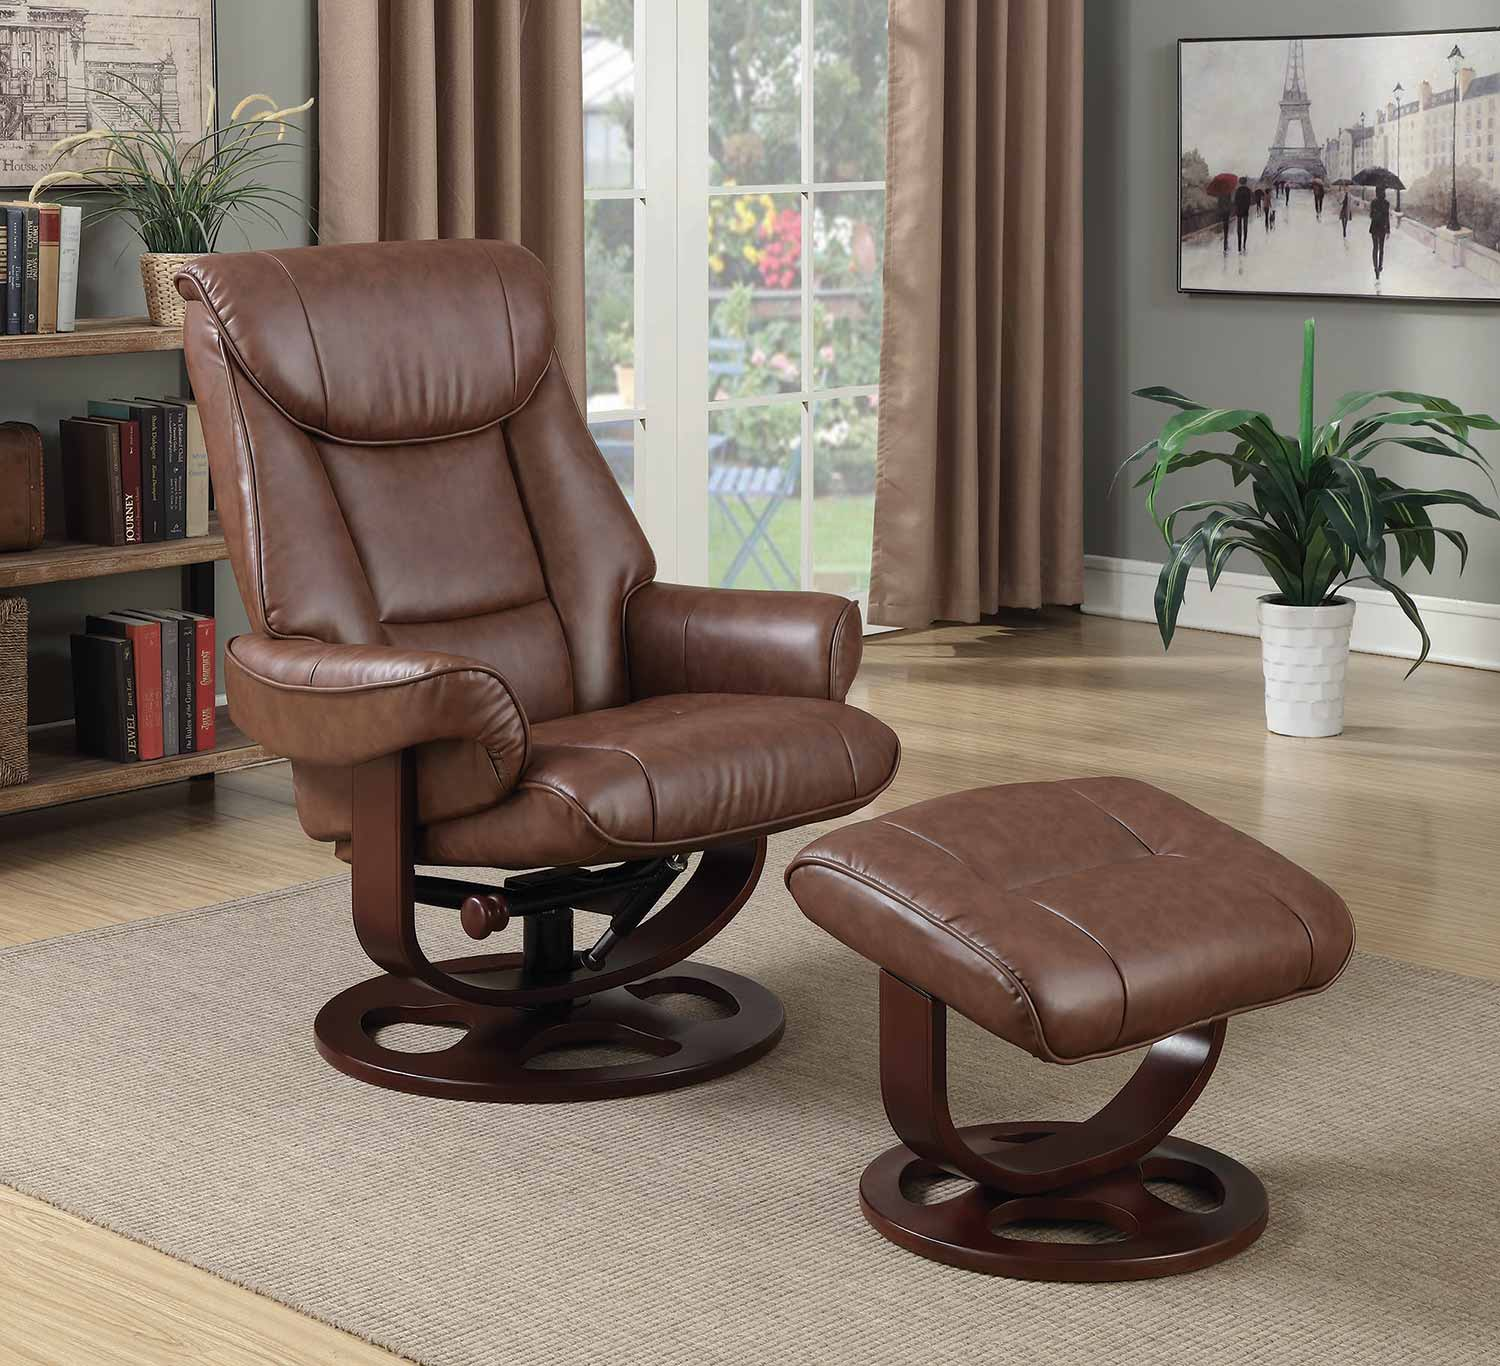 Coaster 600087 Glider Recliner with Ottoman - Brown